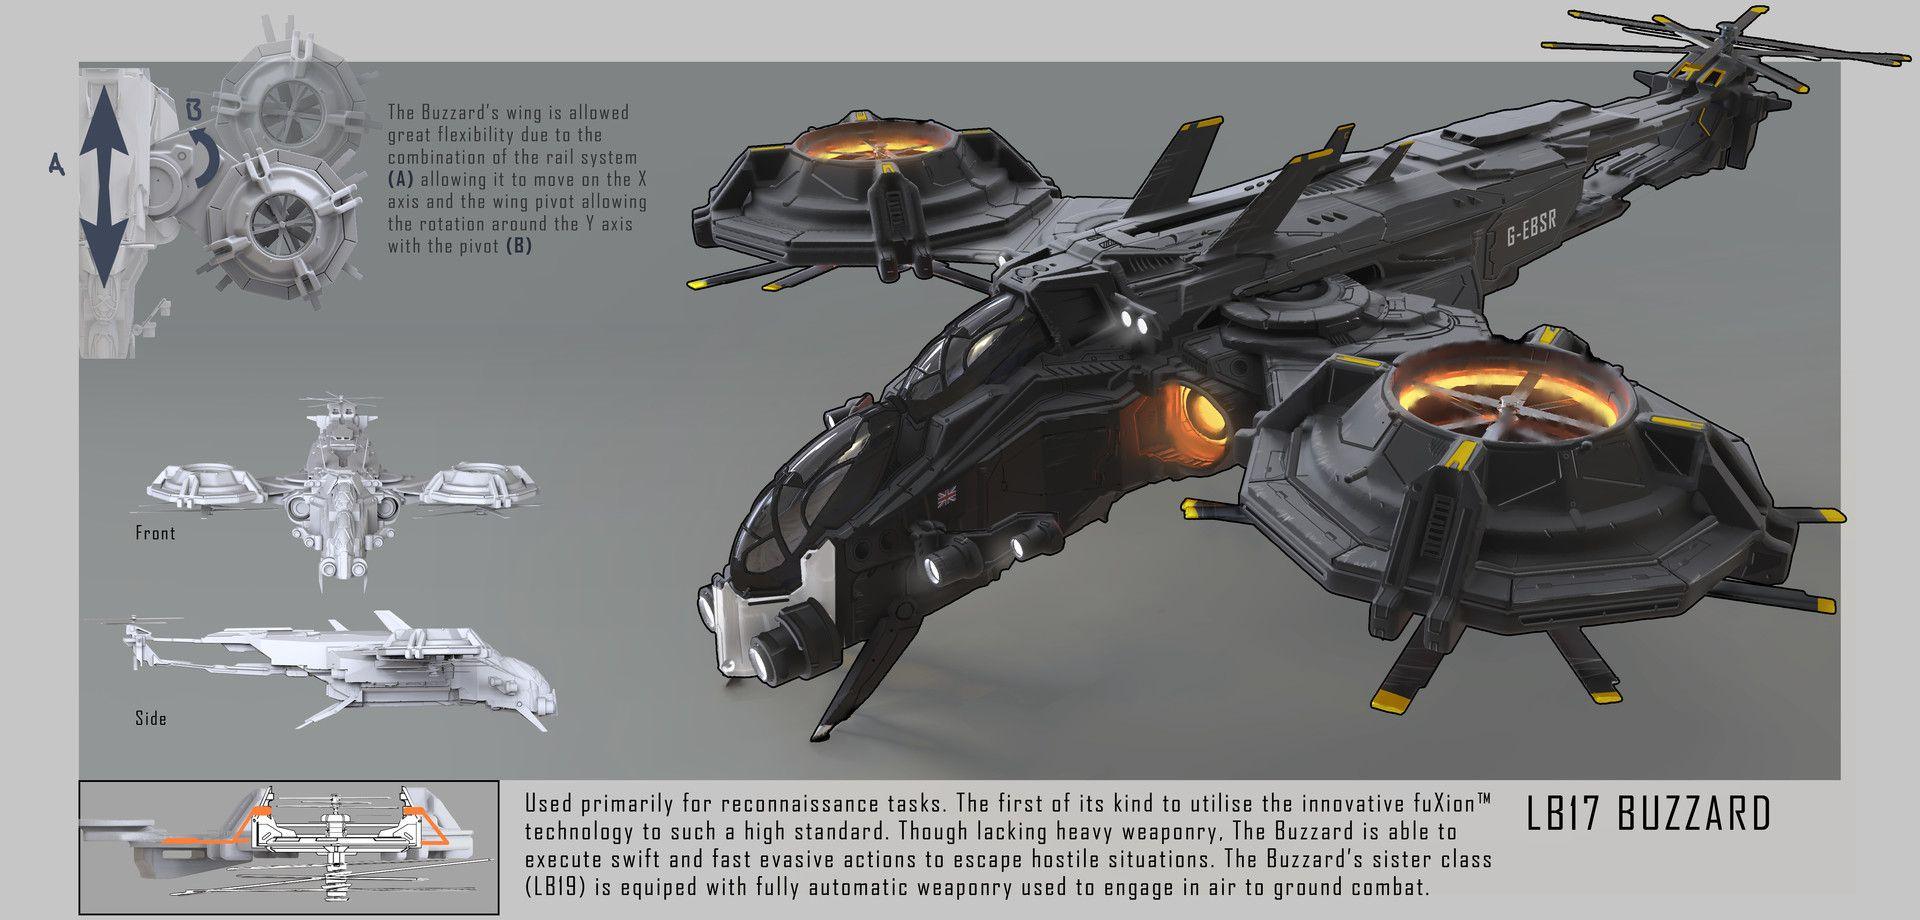 ArtStation - LB17 Buzzard, Connor Sheehan | Concept Art ...